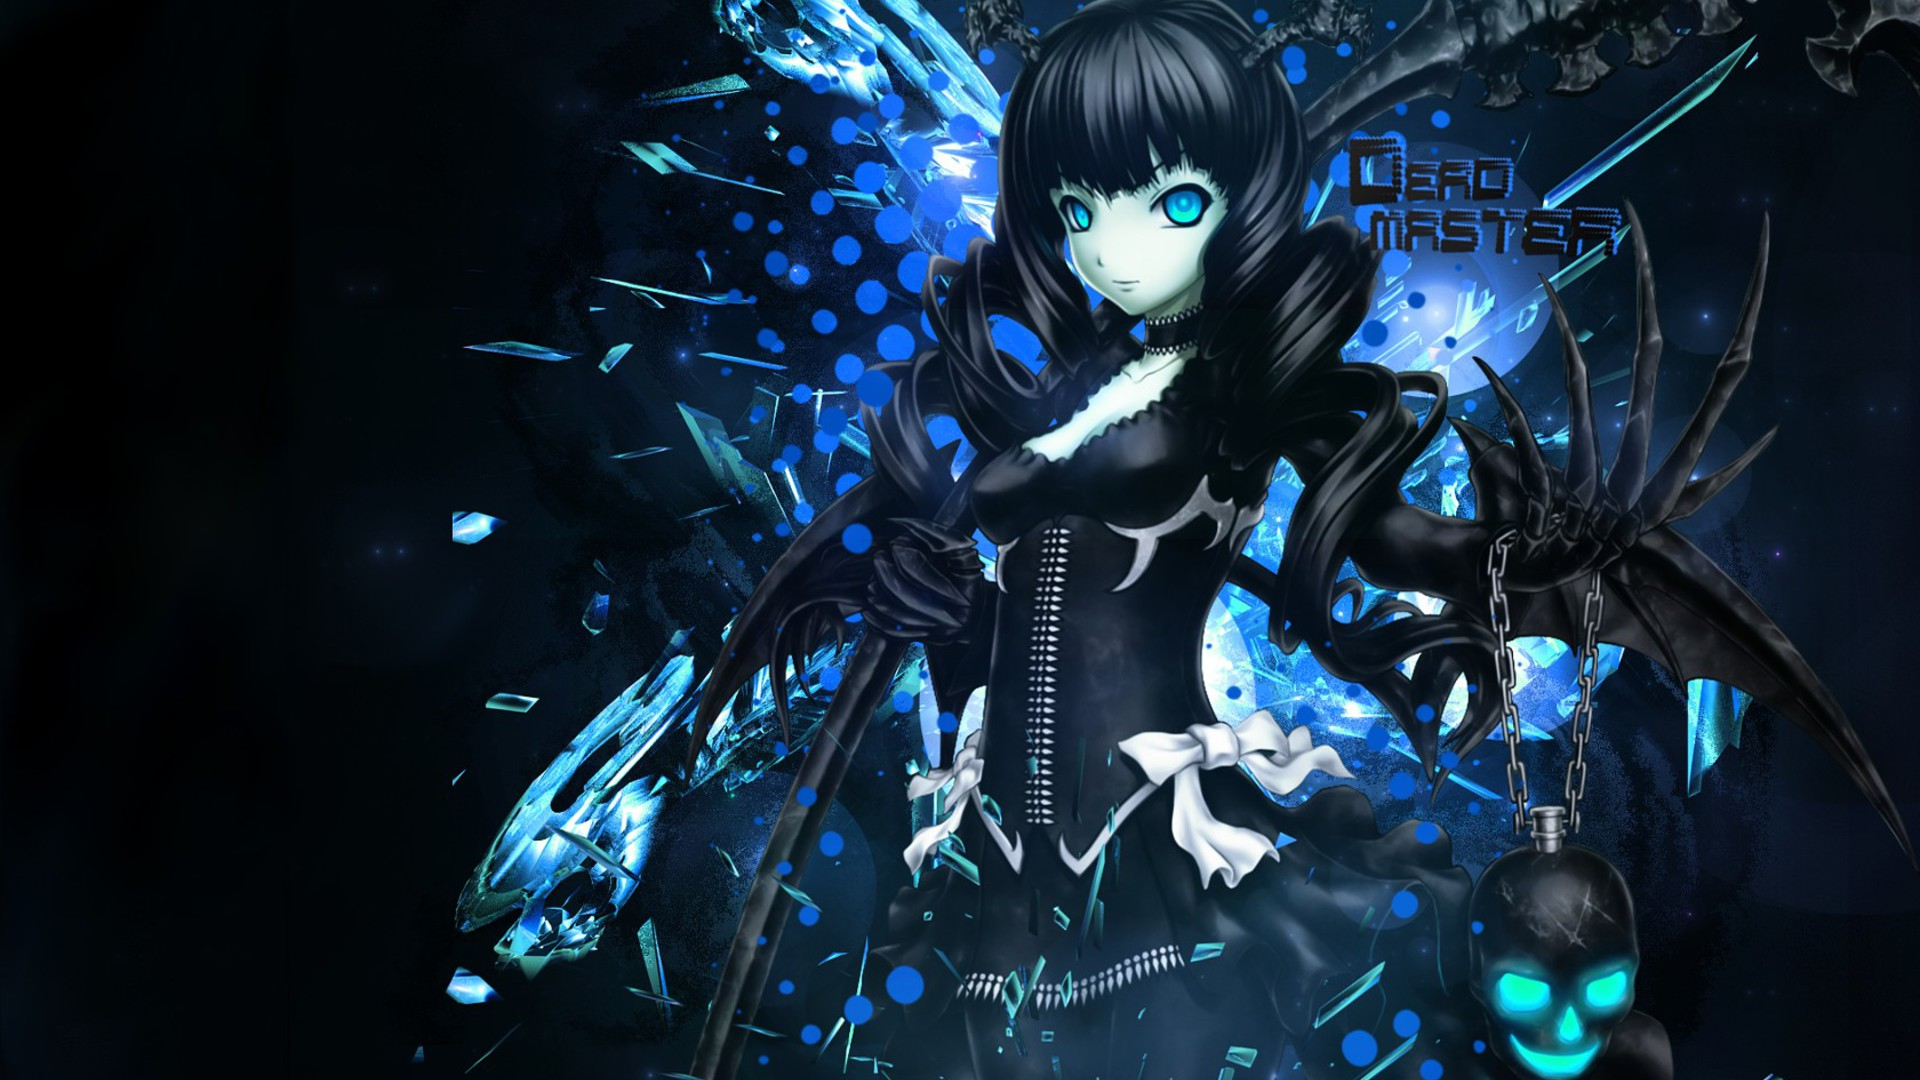 Dead Love Girl Wallpaper : Blue dead master anime wallpaper AllWallpaper.in #9968 Pc en